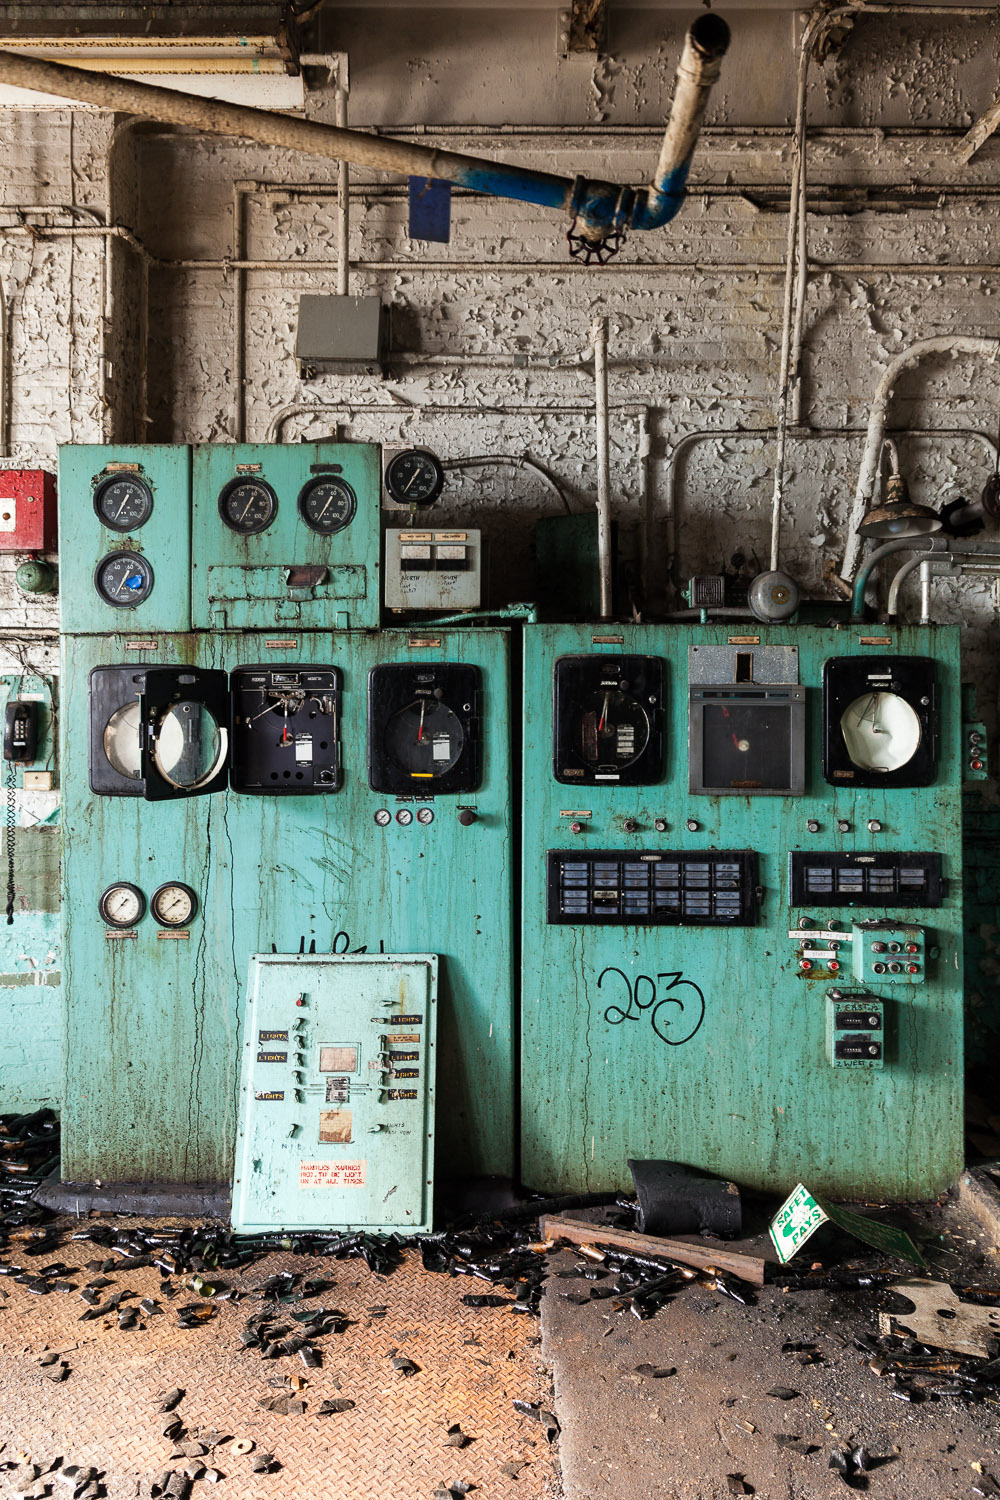 From my series    Sugar Decay,  Domino Sugar Factory,  Wash House Control Panel in the Raw Sugar Wash House . © harlan erskine.